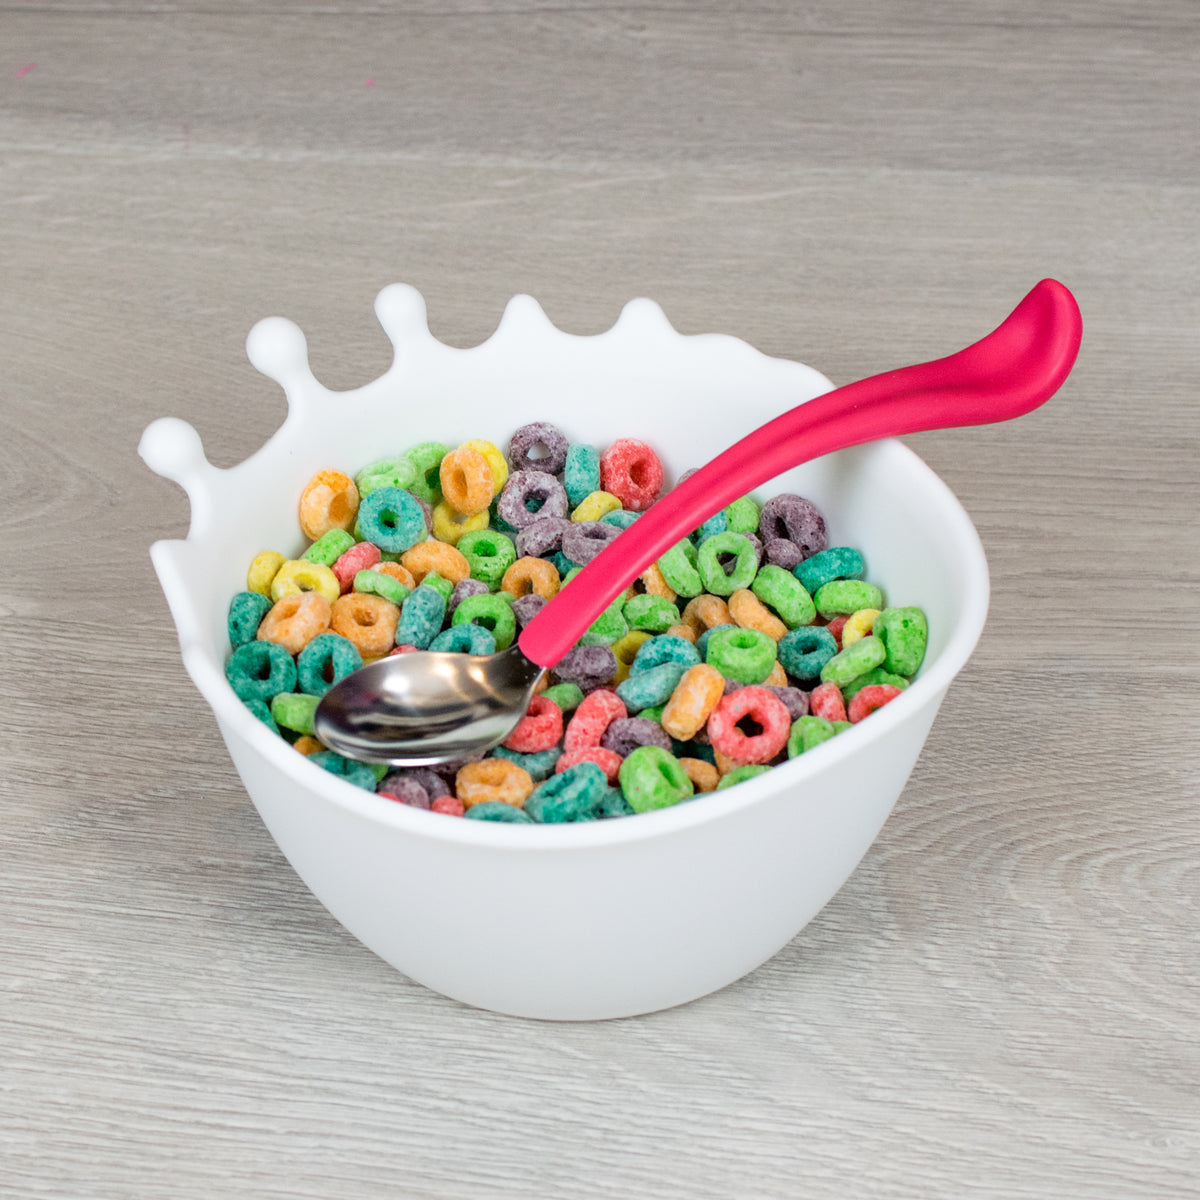 For the Love of Cereal